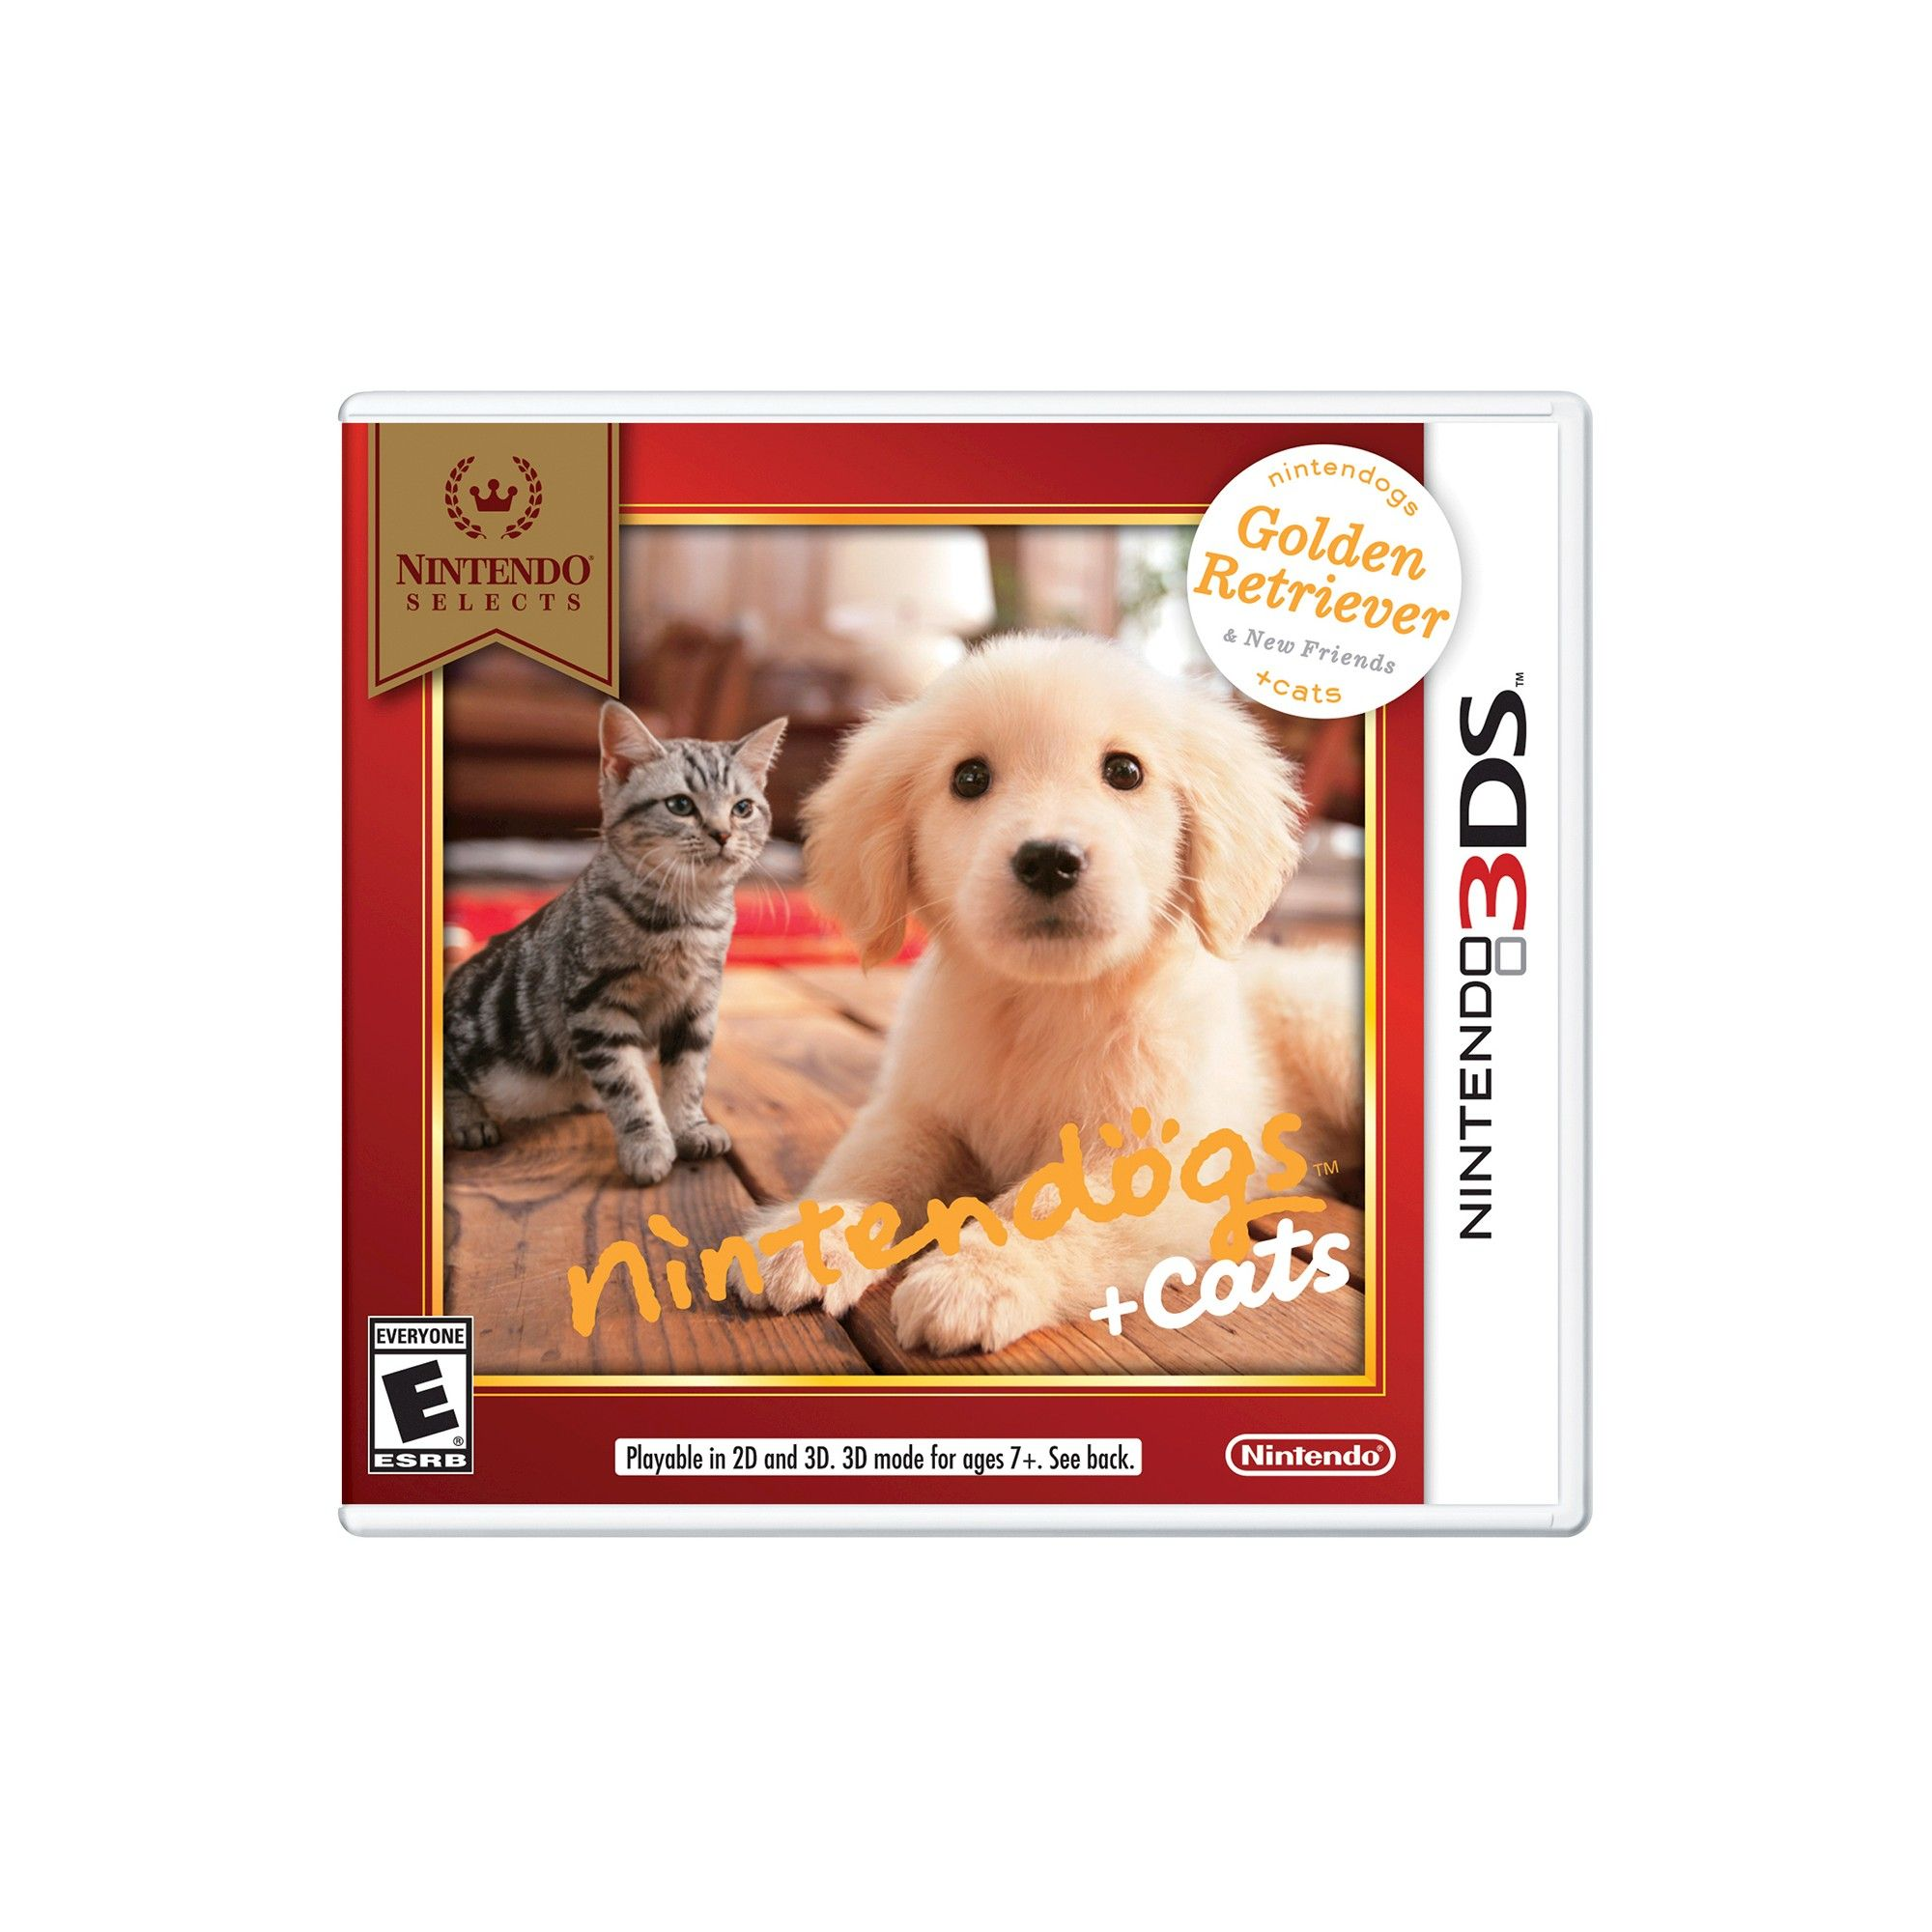 Nintendo Selects Nintendogs Cats Golden Retriever And New